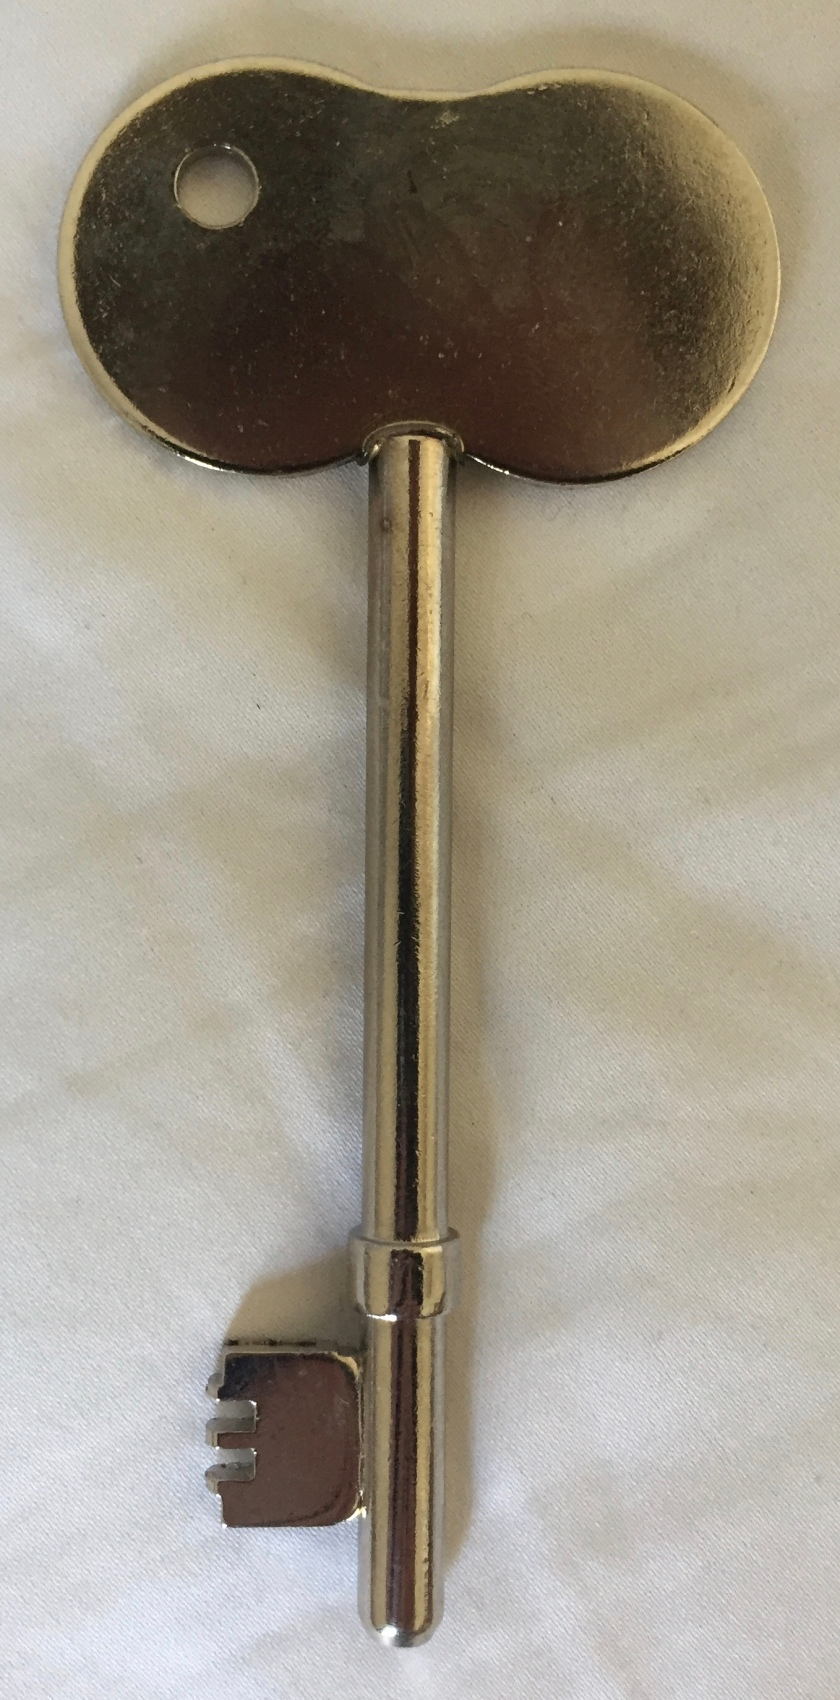 A RADAR key, which is just a large silver key with a large rounded head.